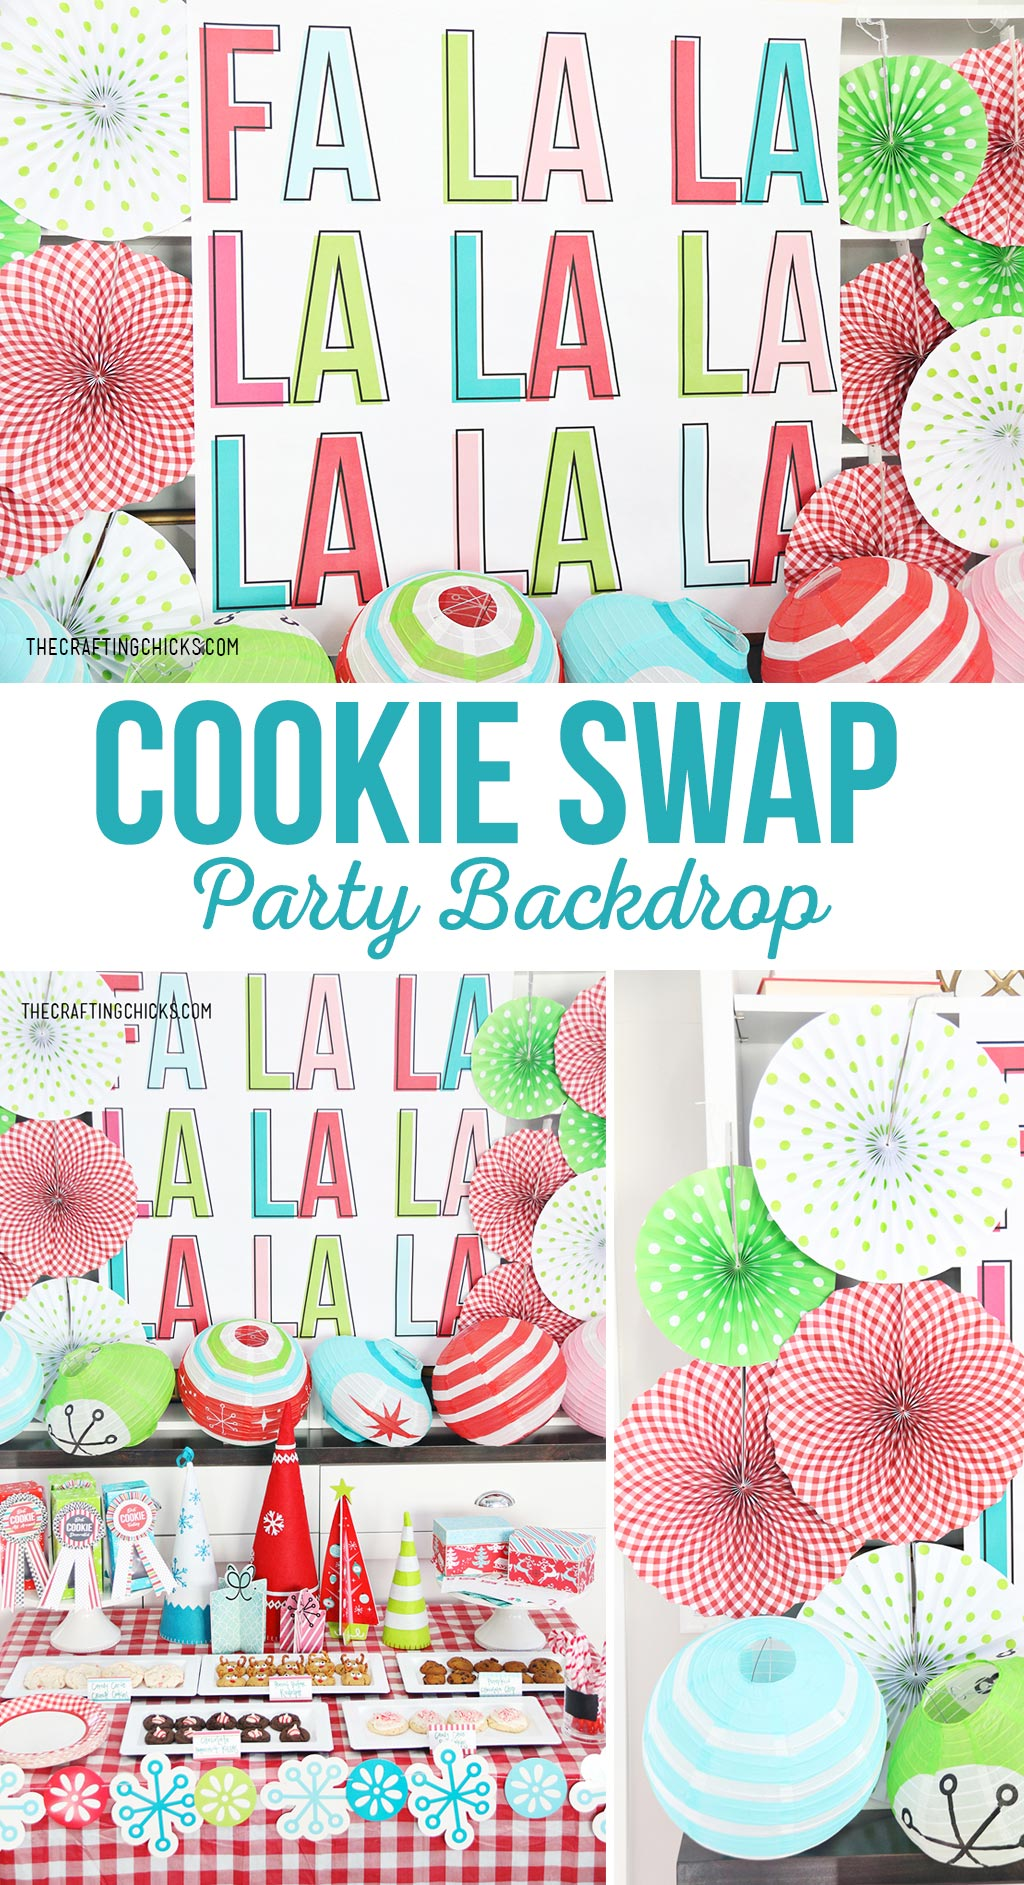 Printable Party Backdrop